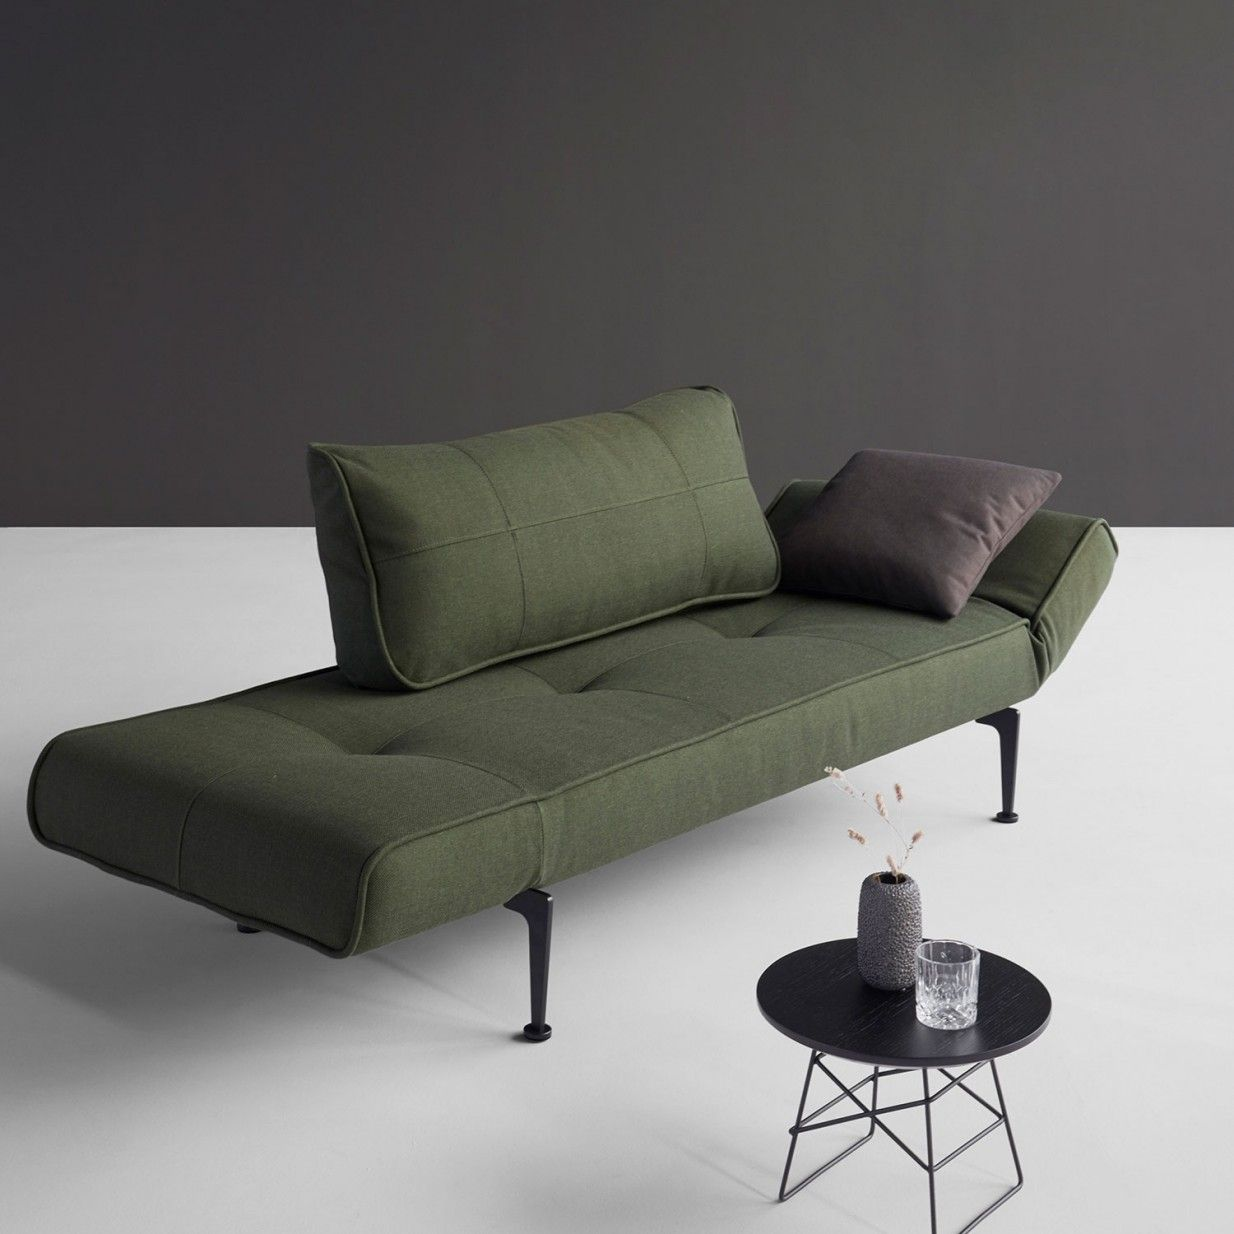 Innovation Schlafsofas Berlin Zeal Schlafsofa Grün Innovation Living Möbel Folding Sofa